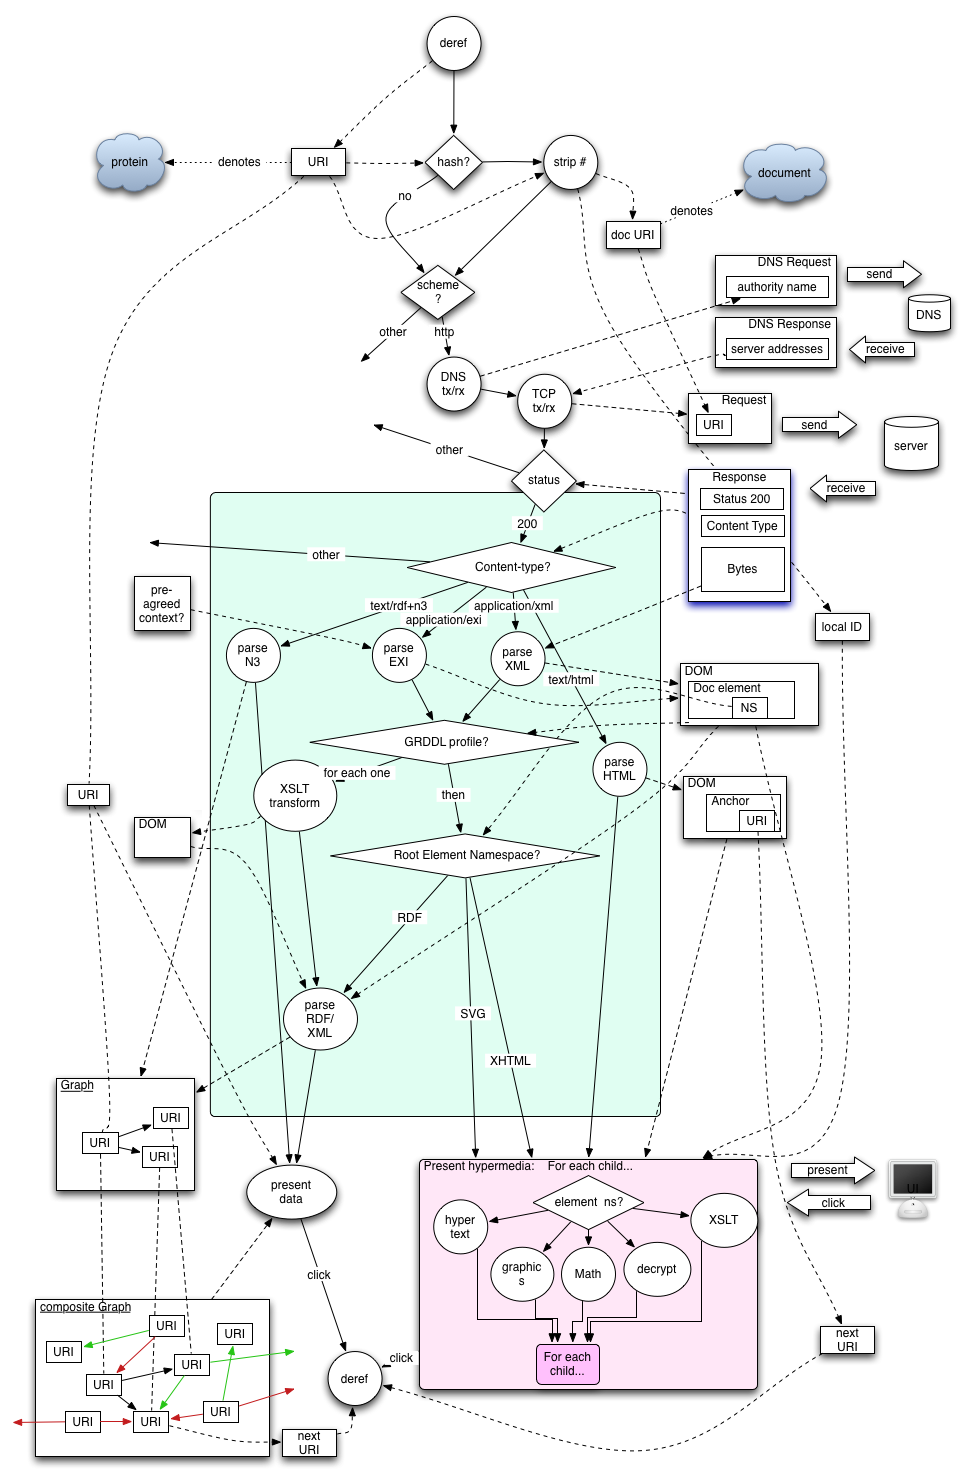 Flow diagram of the Web's retrieval algorithm